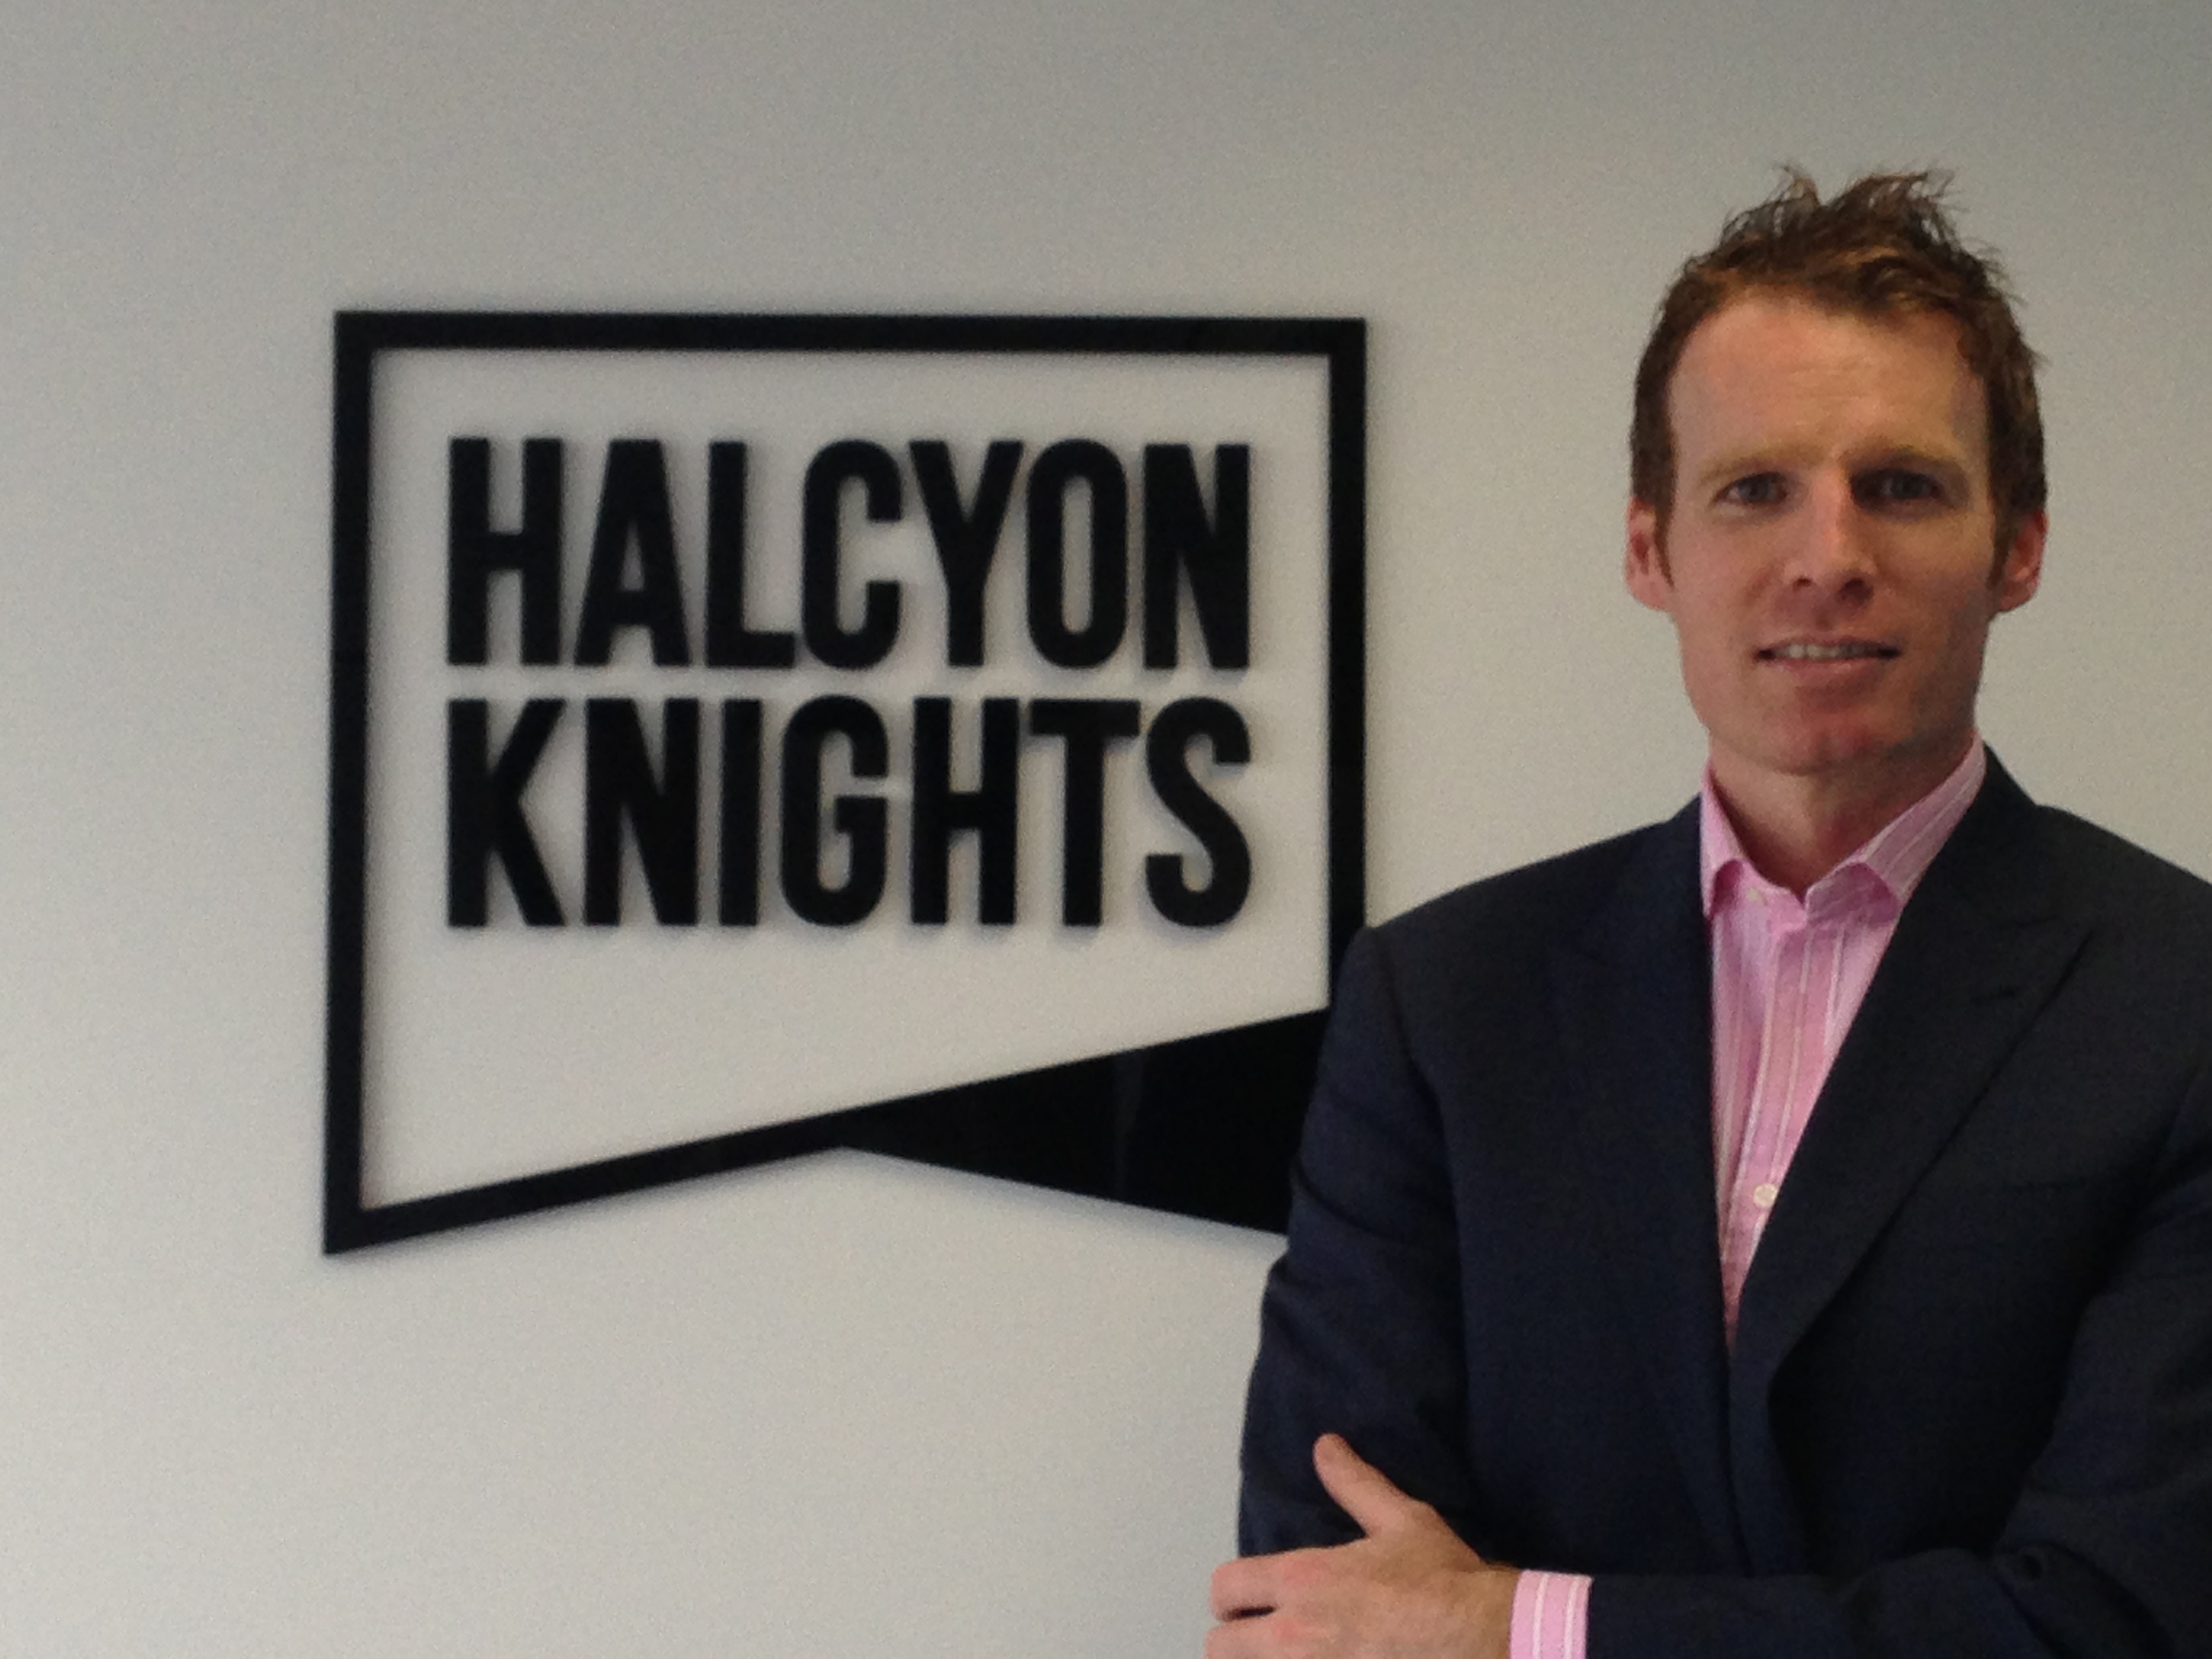 Halcyon Knights joins Invest Victoria Advisory Network